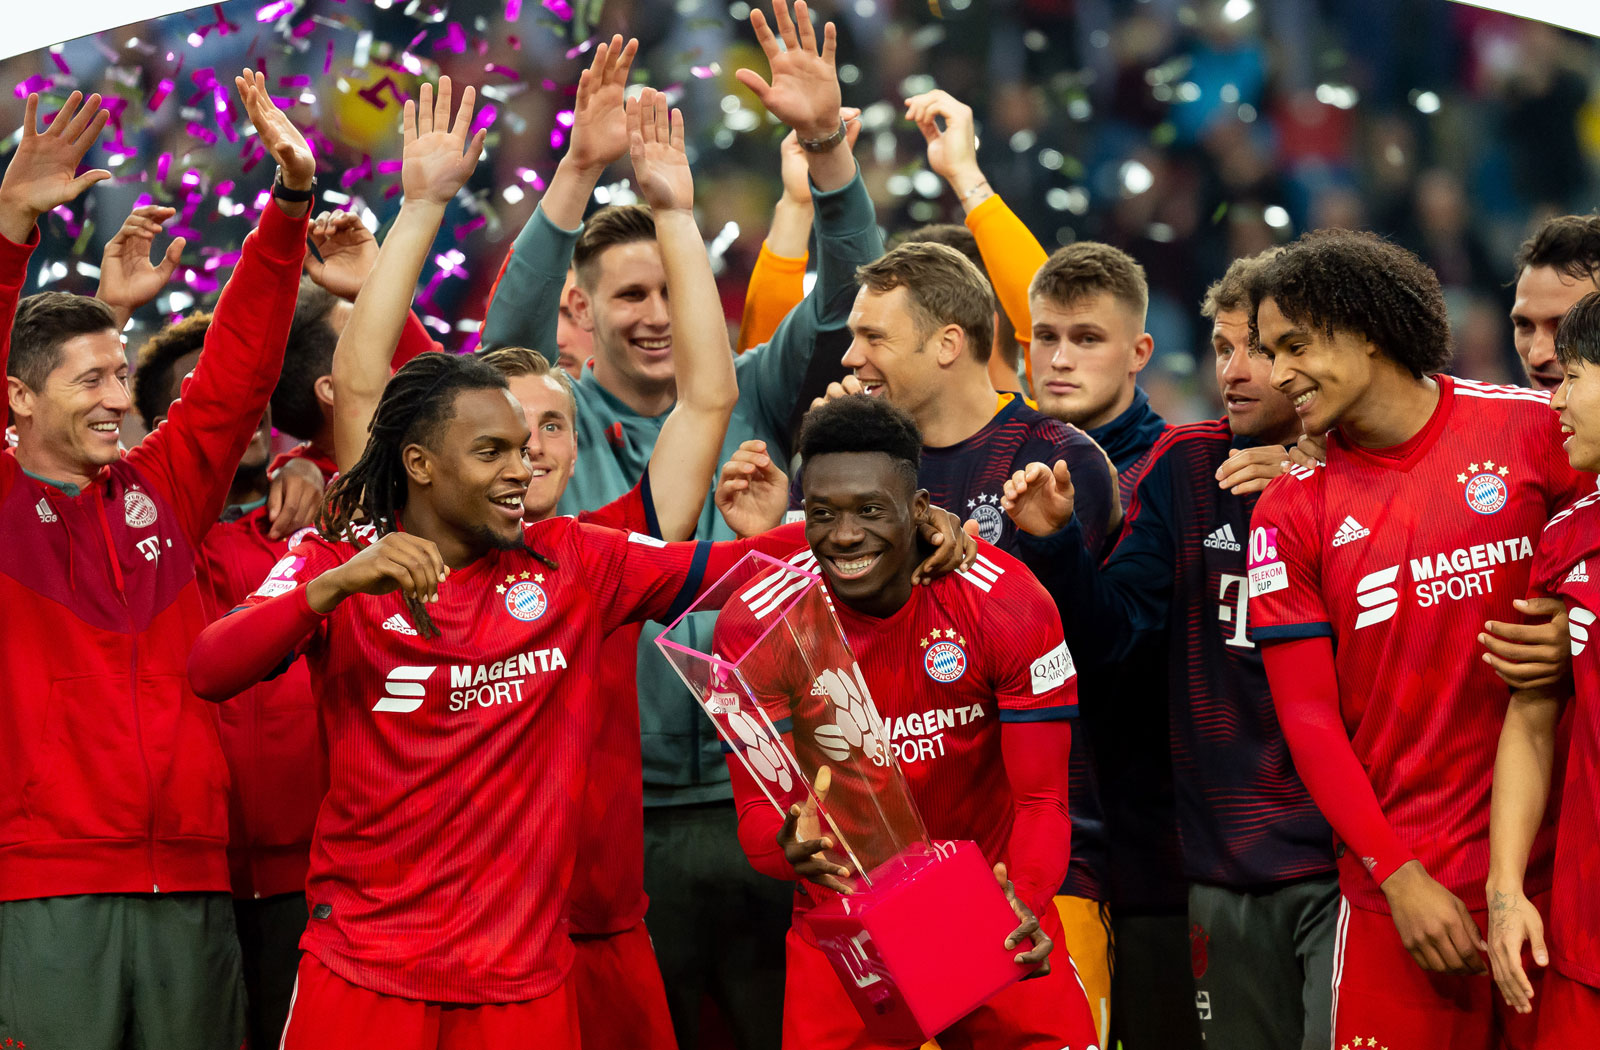 Alphonso Davies joined Bayern Munich from the Vancouver Whitecaps